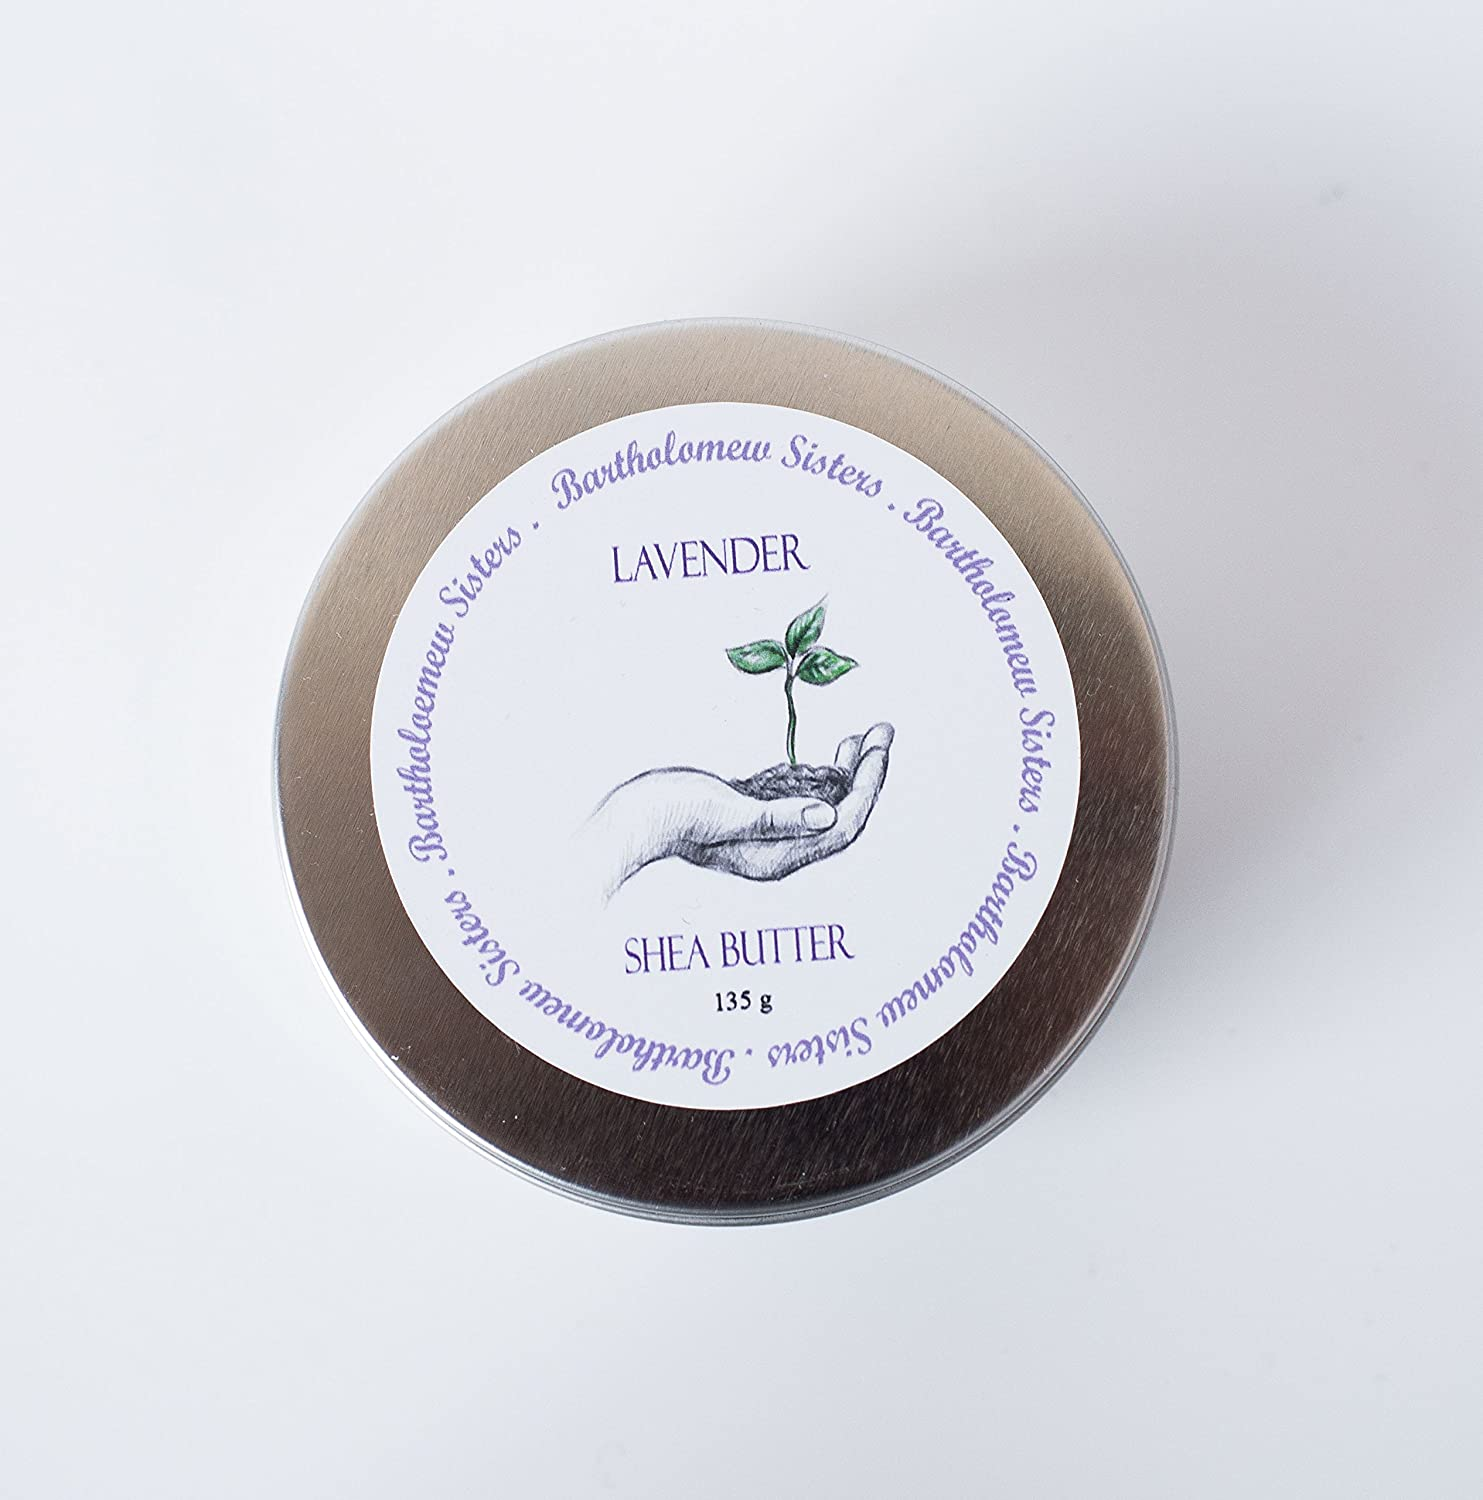 Handmade Natural Lavender Shea Butter Vegan Body Butter, 4 oz